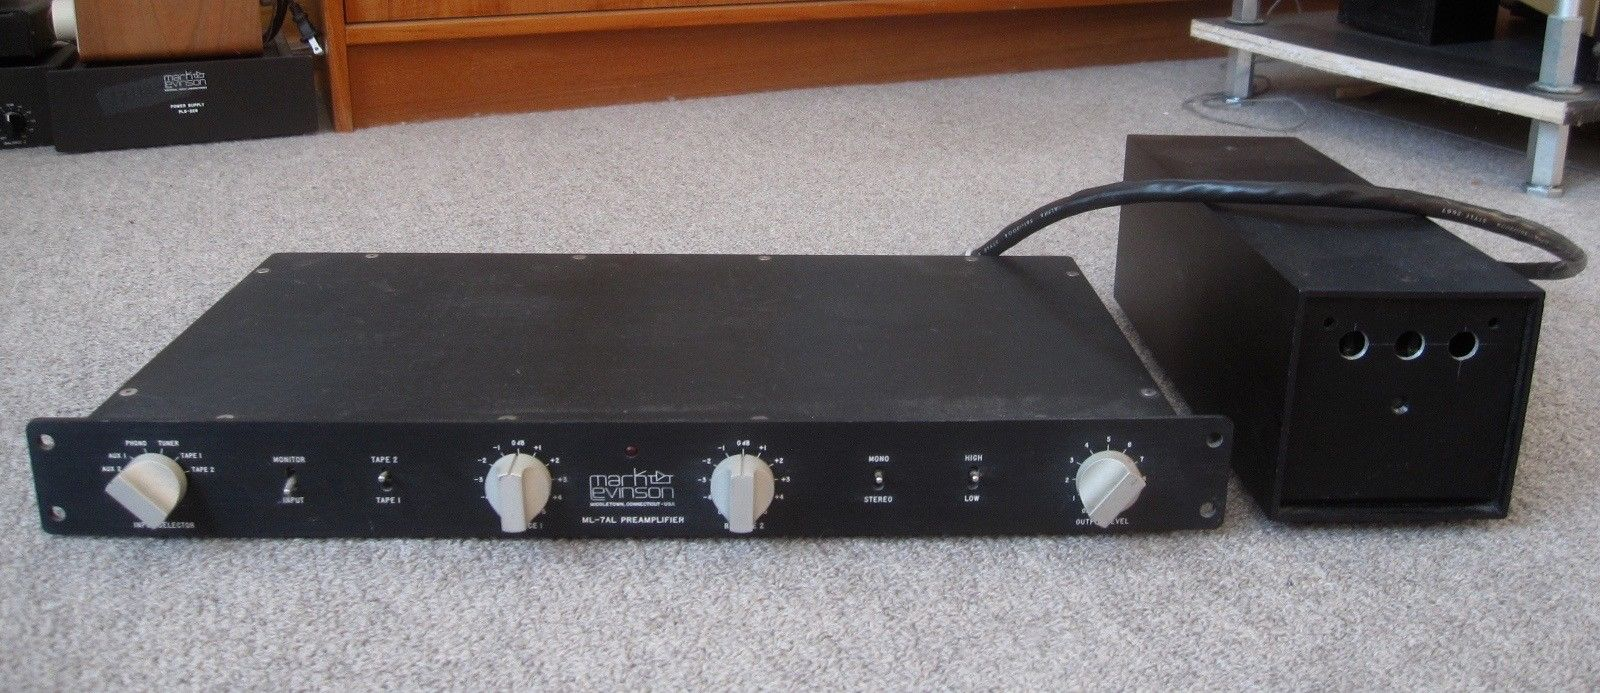 Mark Levinson ML-7A Preamplifier - mc phono (L3 board), owned by ML engineer